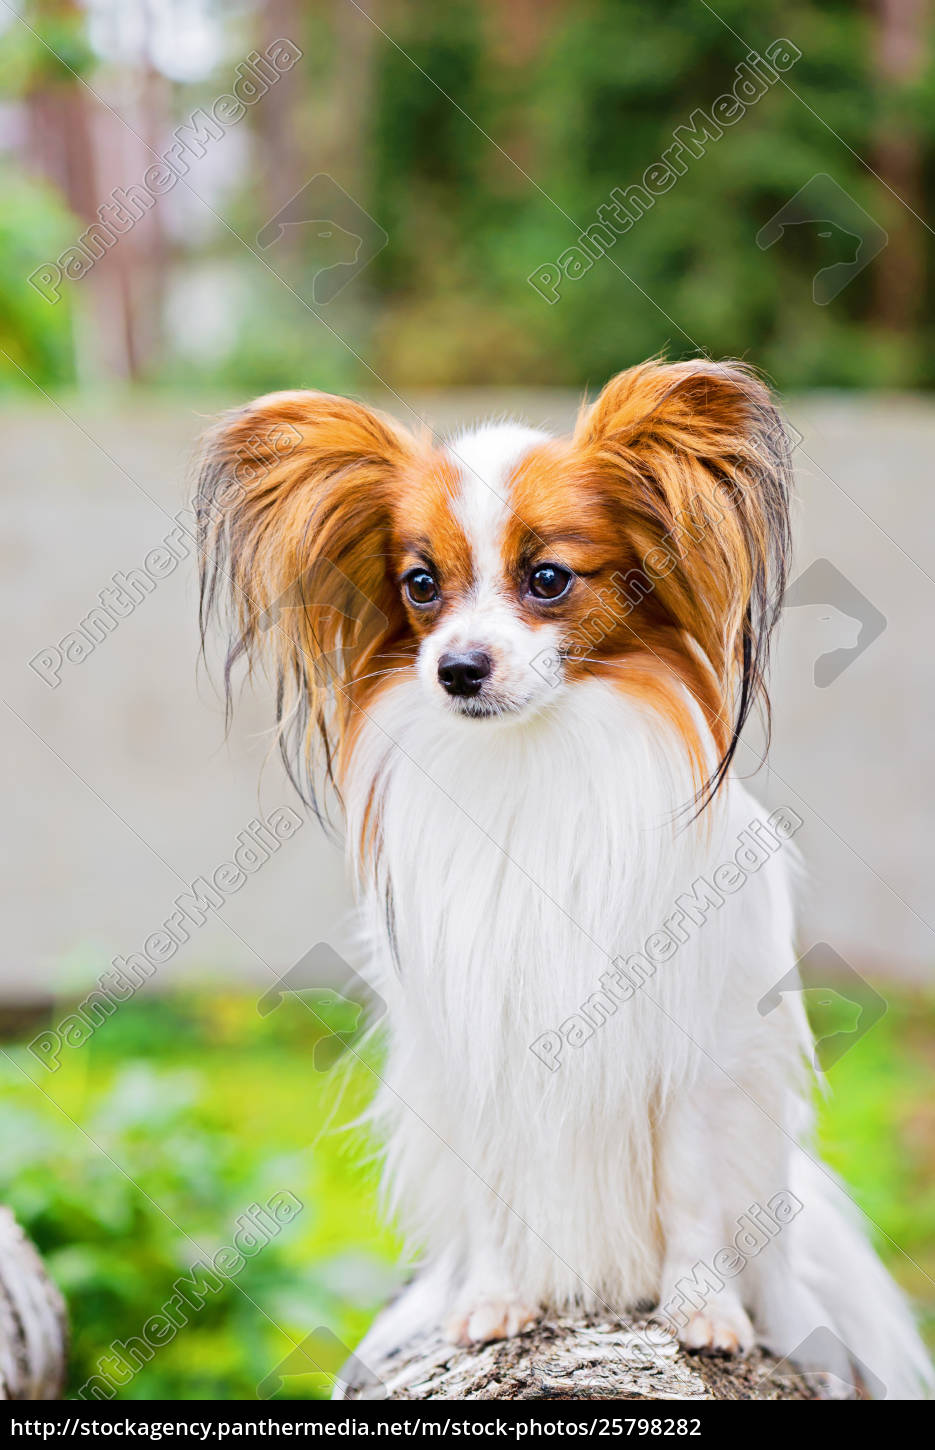 Portrait of a papillon purebreed dog - Stock image - #25798282 -  PantherMedia Stock Agency